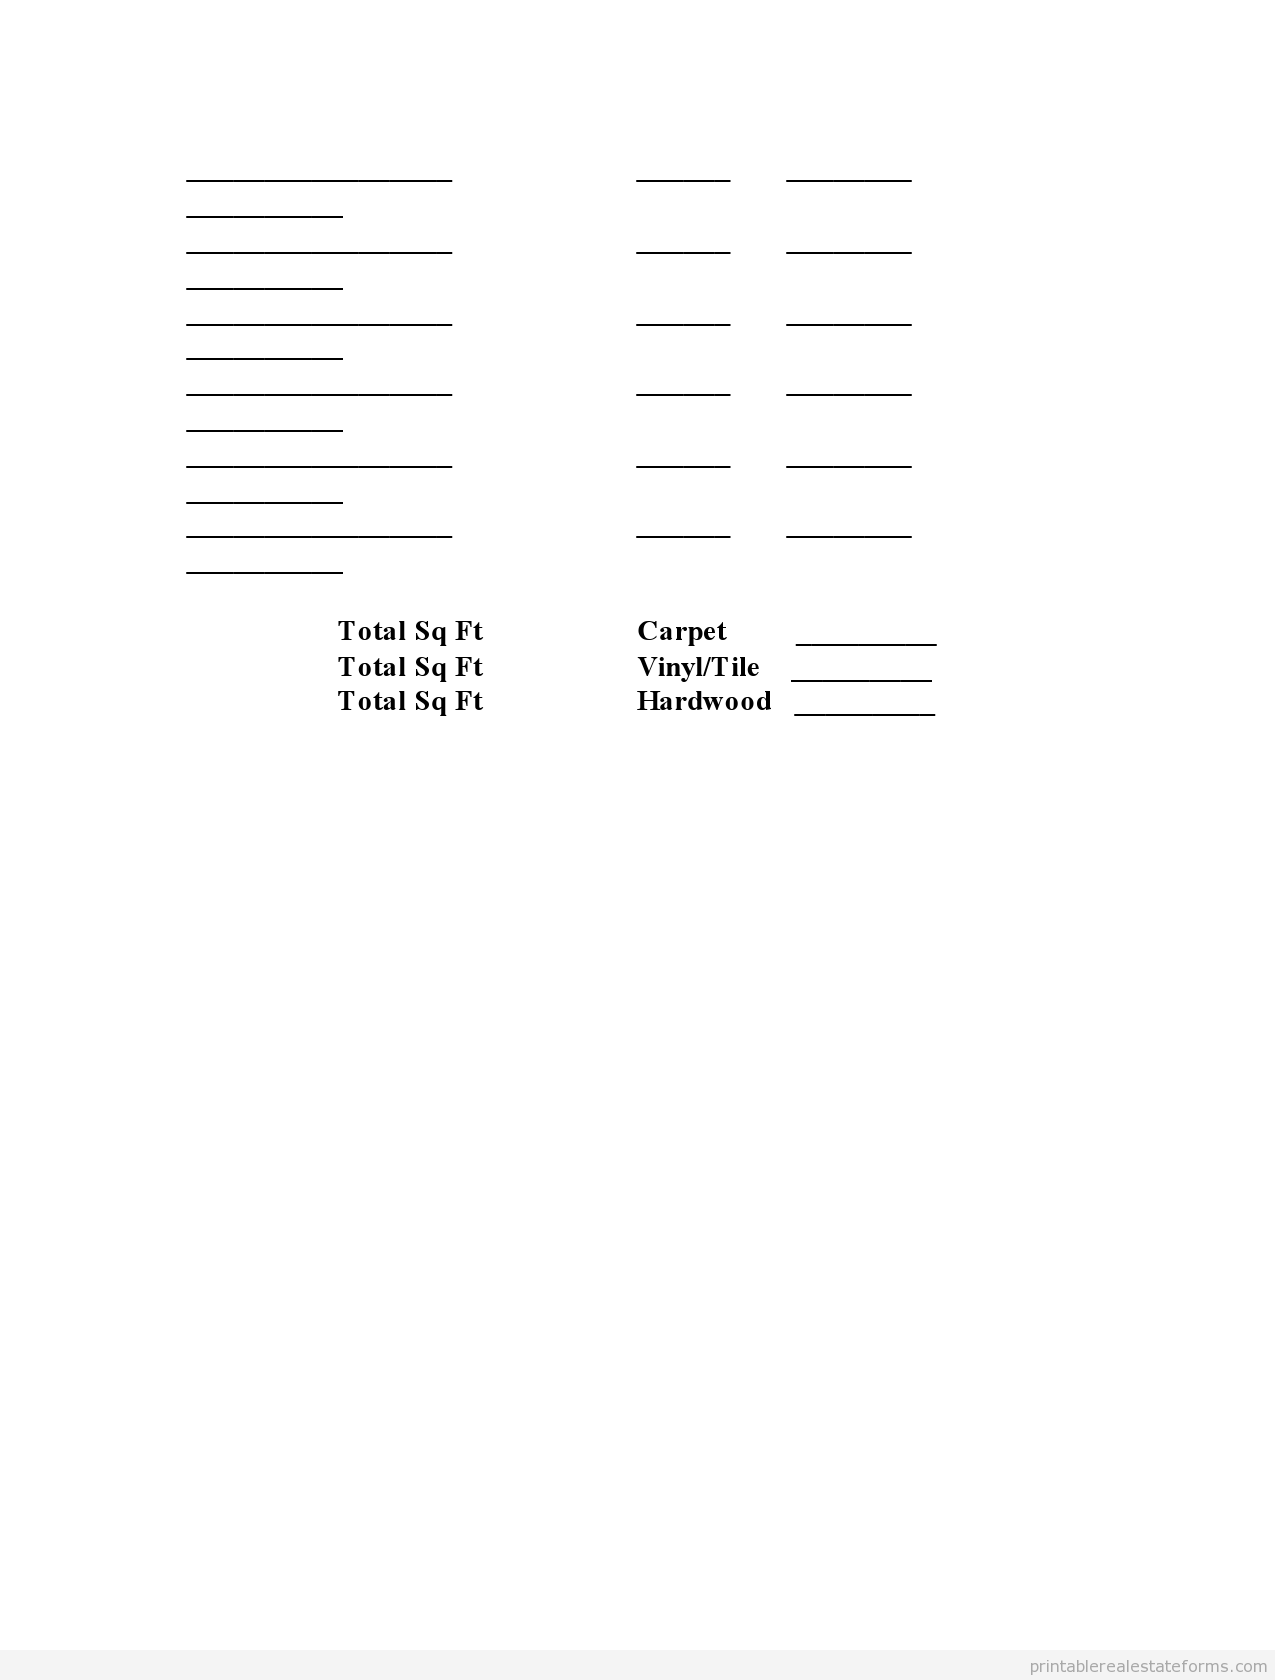 Printable Prop Insp Flooring Estimate Worksheet Template